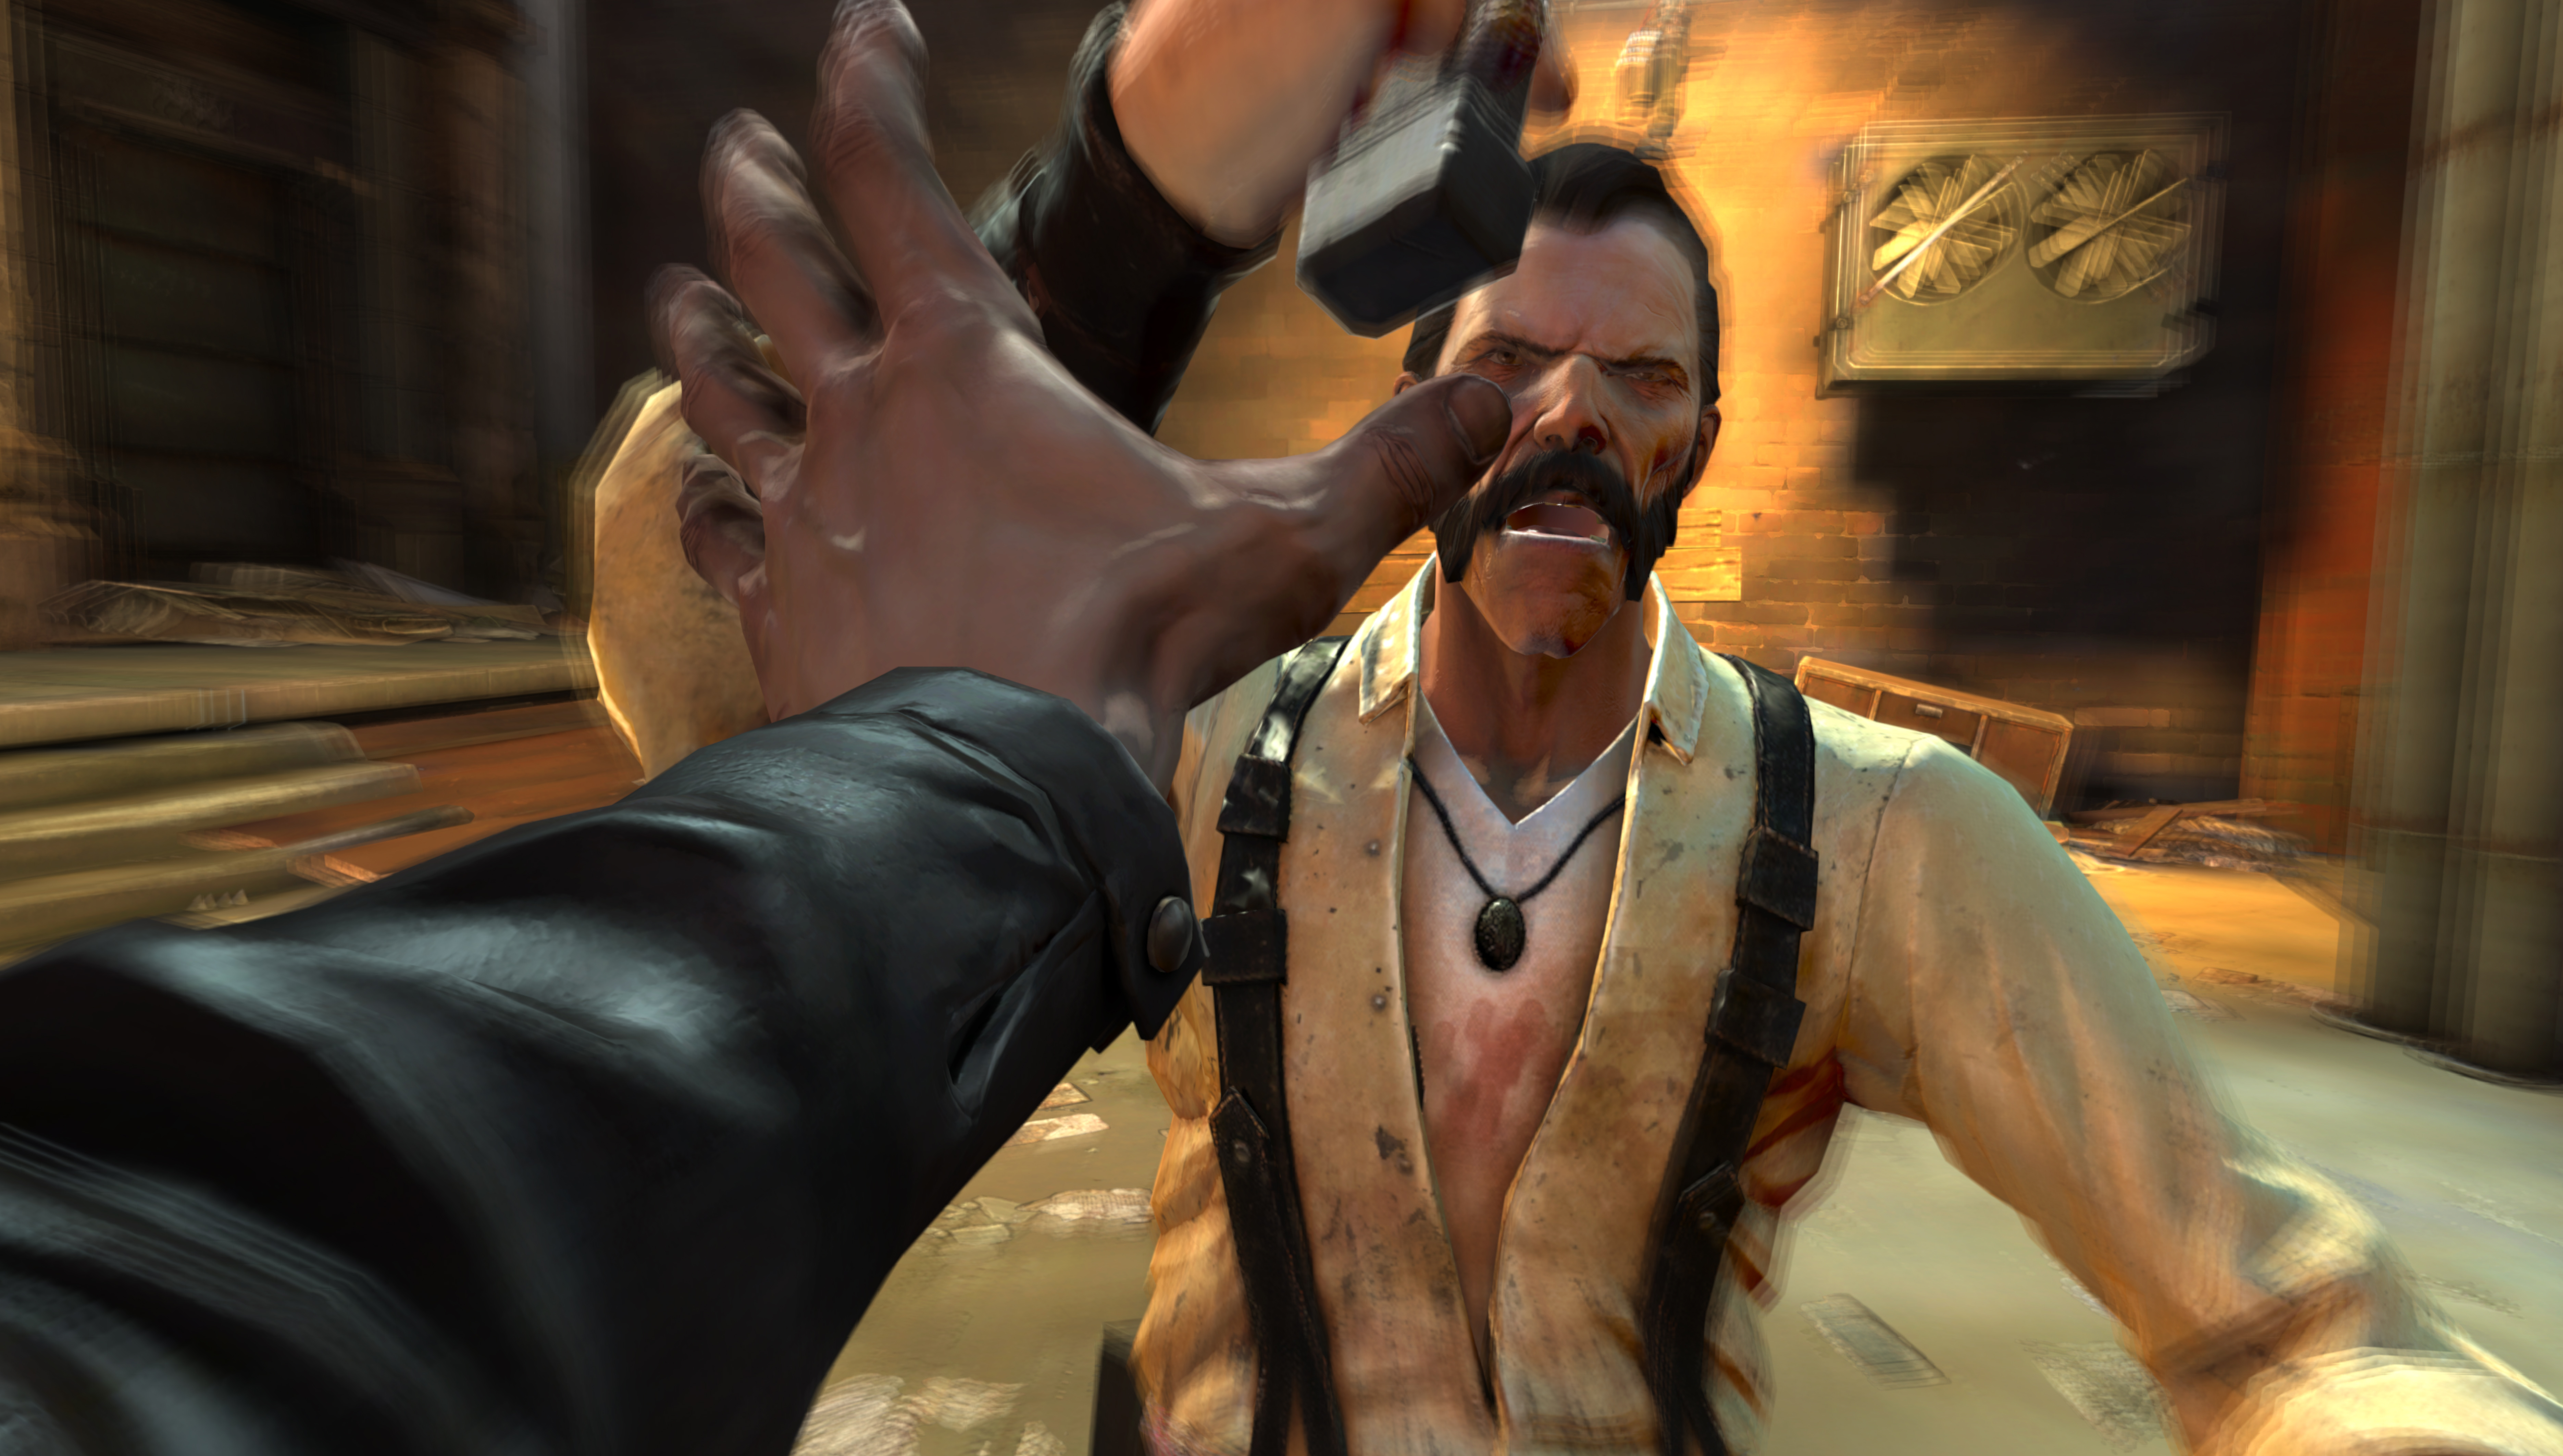 http://gotgame.com/wp-content/uploads/2011/08/Dishonored_Combat.jpg